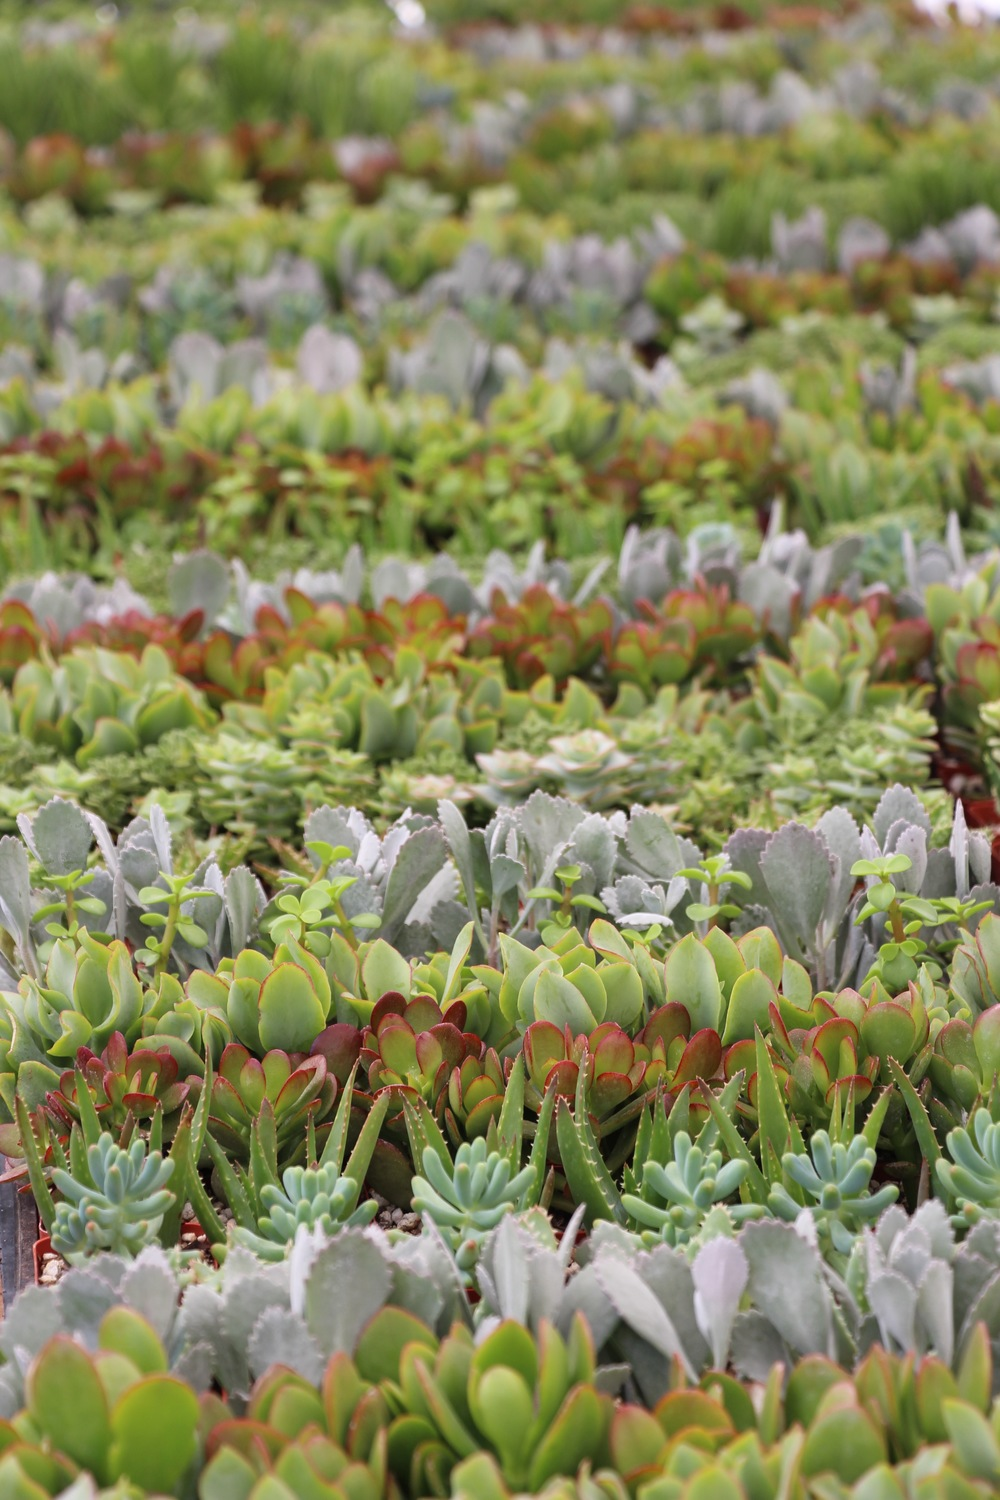 Rancho Vista Nursery: Quality Cactus and Succulents in Vista, CA